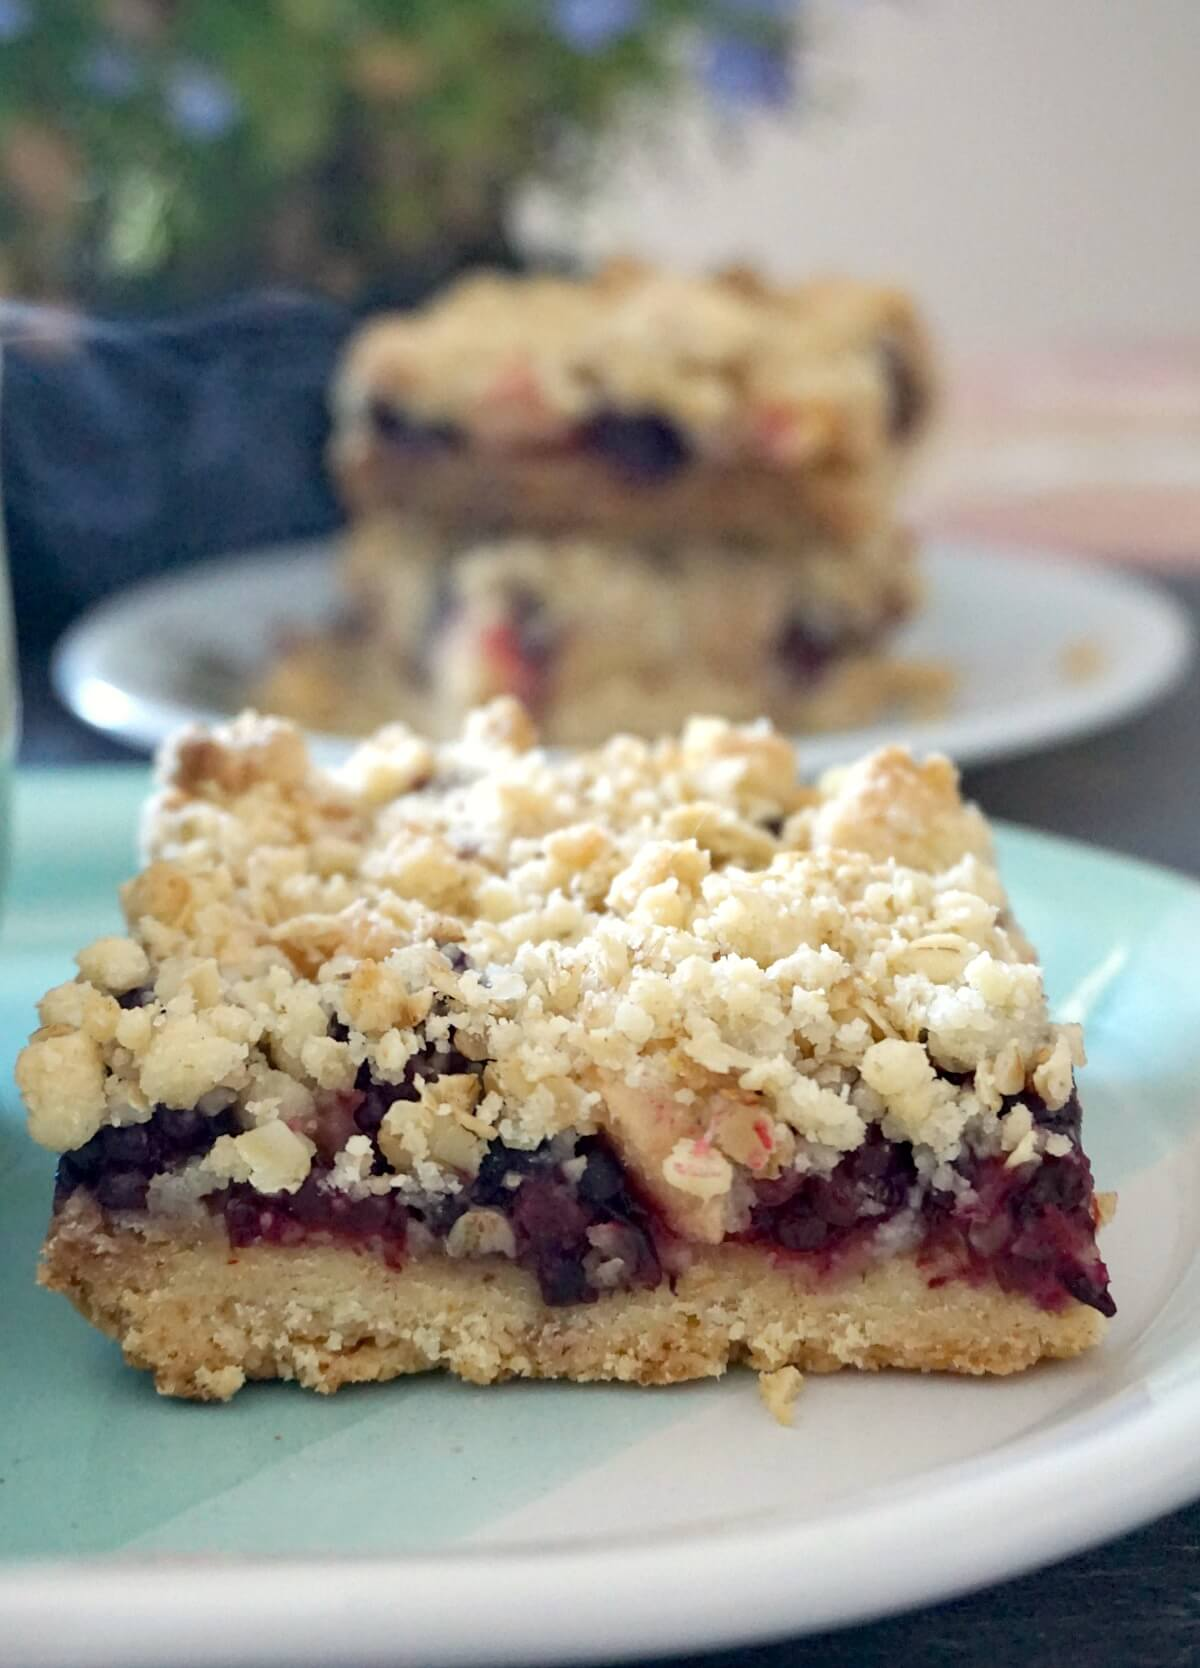 A slice of apple and blackberry crumble bar on a light blue plate